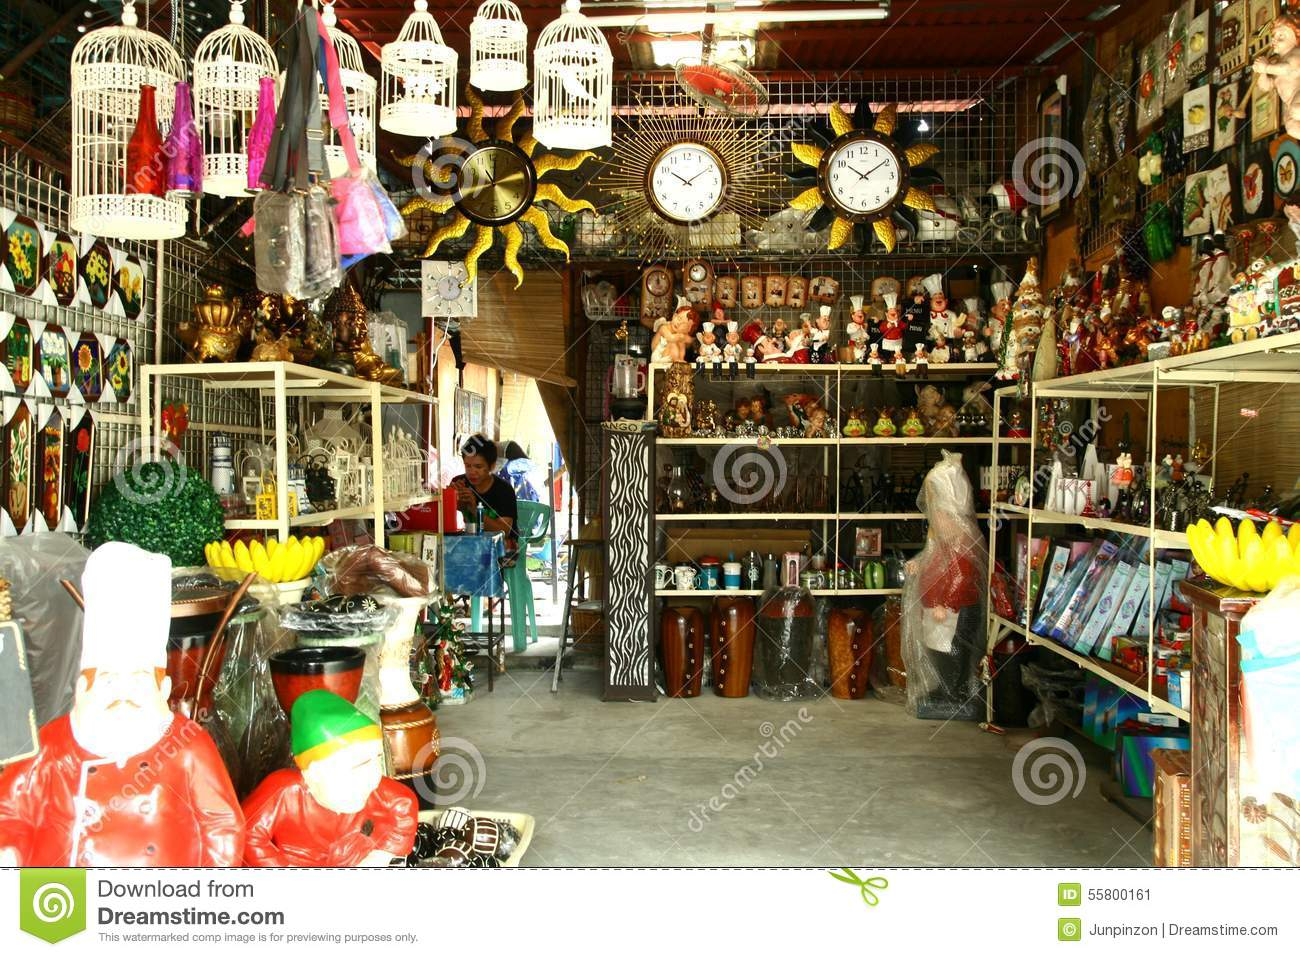 Flea market stores in dapitan arcade in manila philippines selling houseware and home decor Uk home furniture market